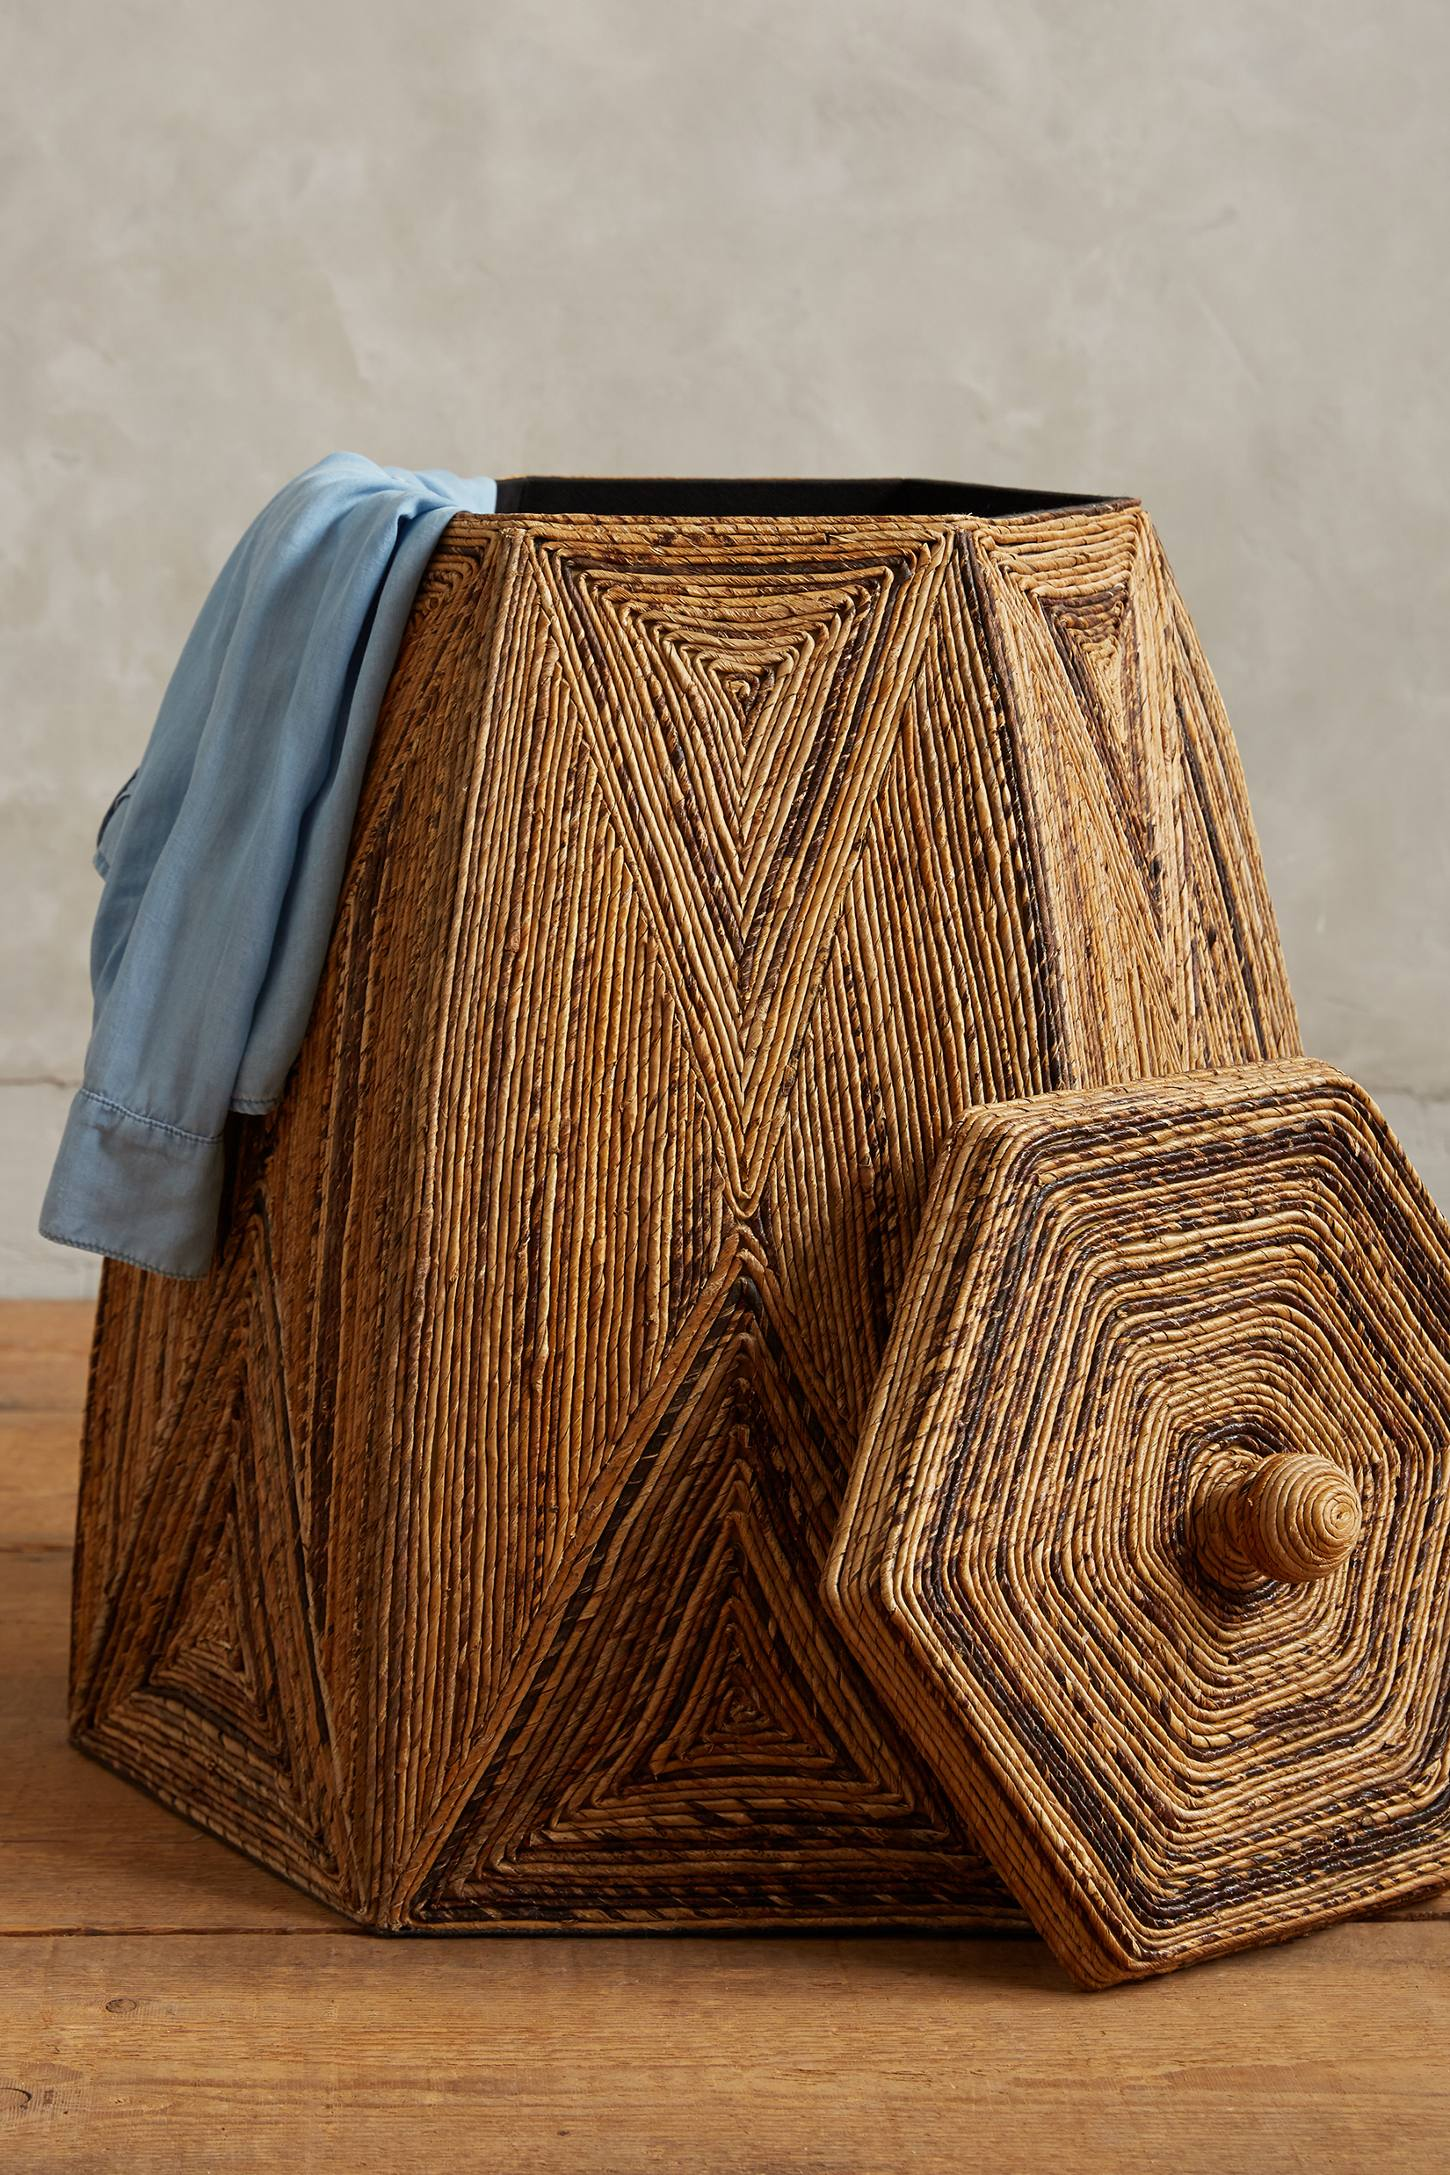 20 Laundry Basket Designs That Make Household Chores Stylish